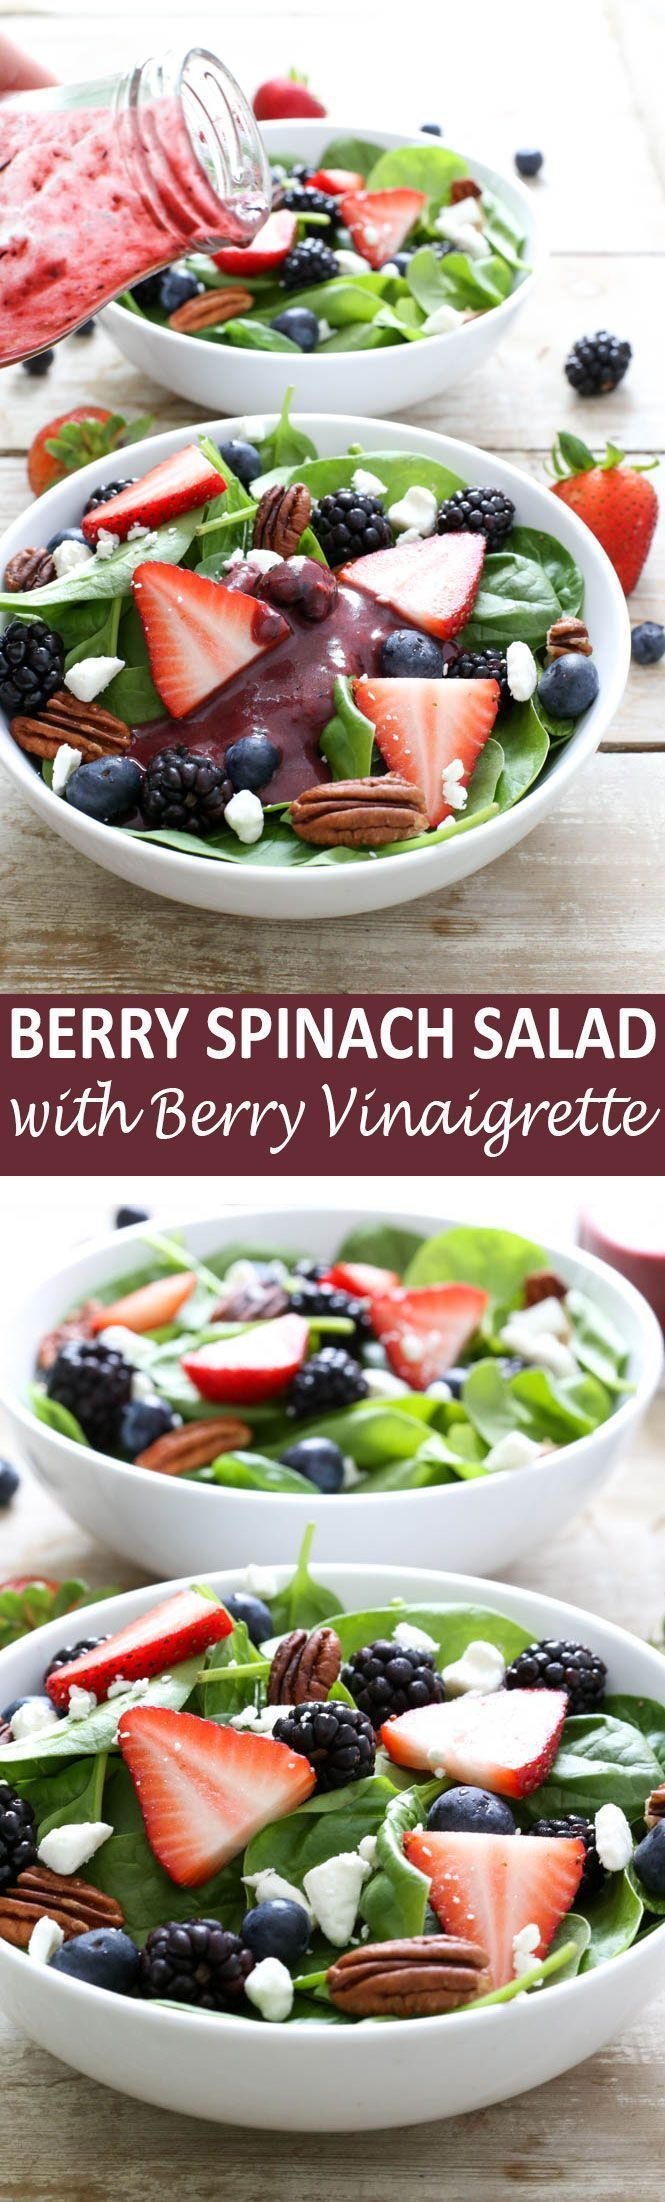 Super colorful and light Berry Spinach Salad with Berry Balsamic Vinaigrette. Takes less than 15 minutes to throw together! Recipe by chefsavvy.com